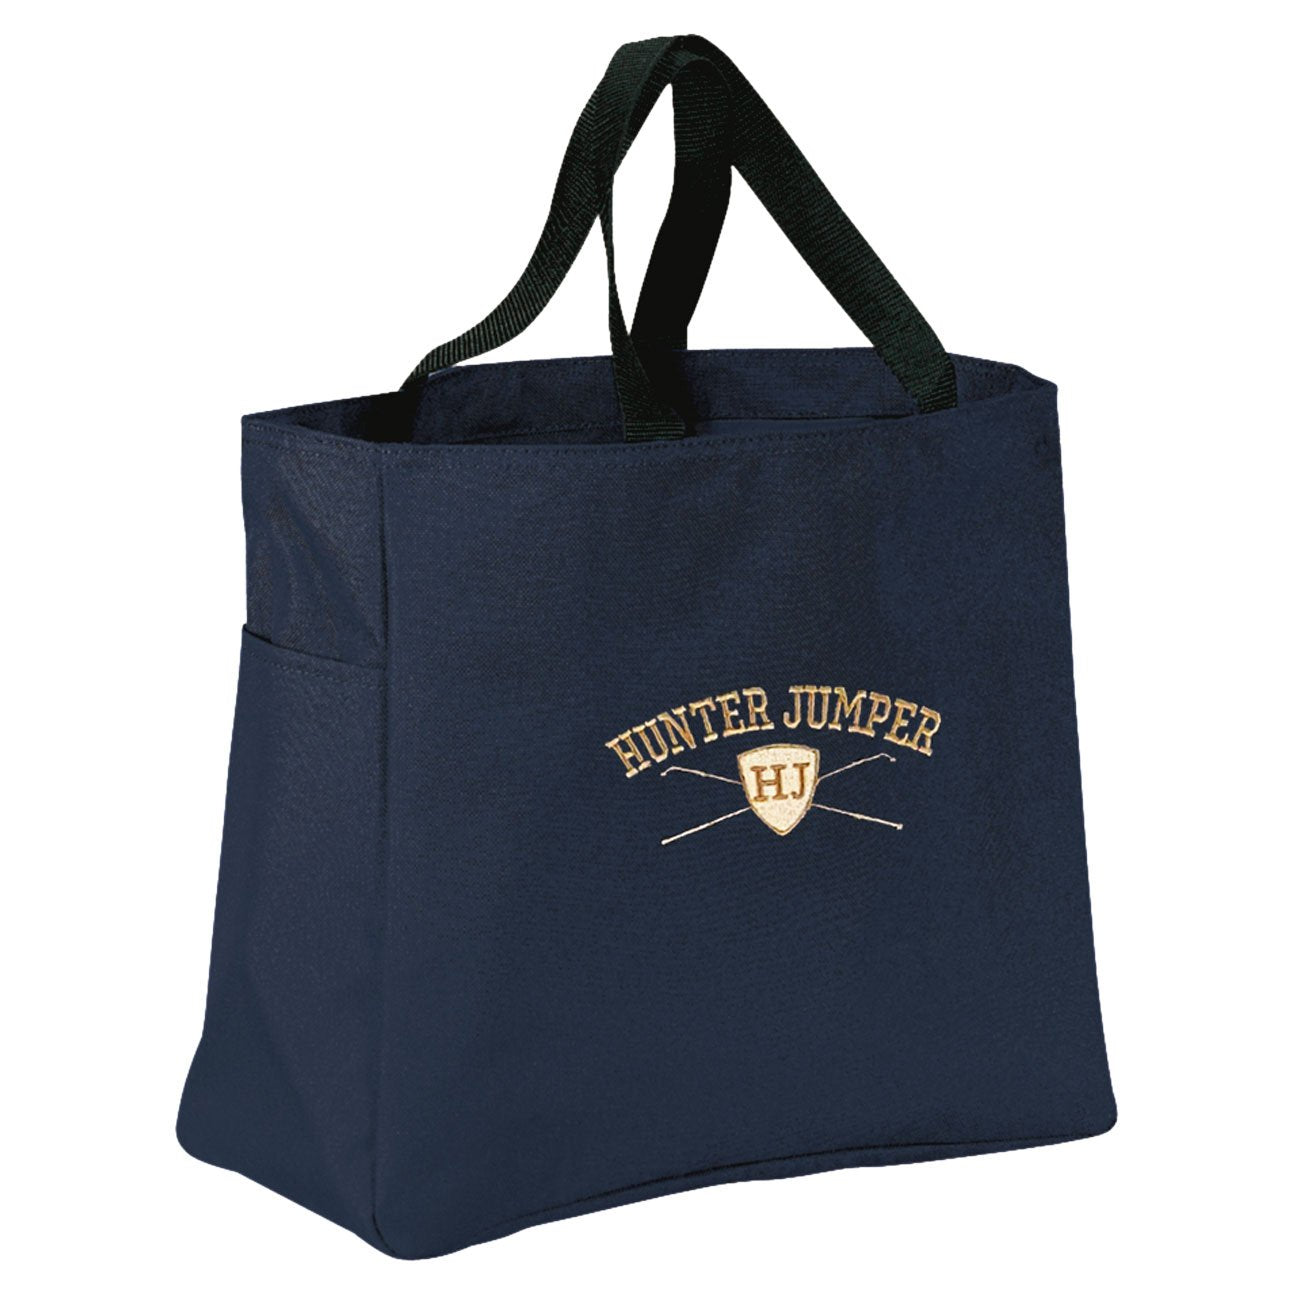 Hunter Jumper Shield Tote Bag